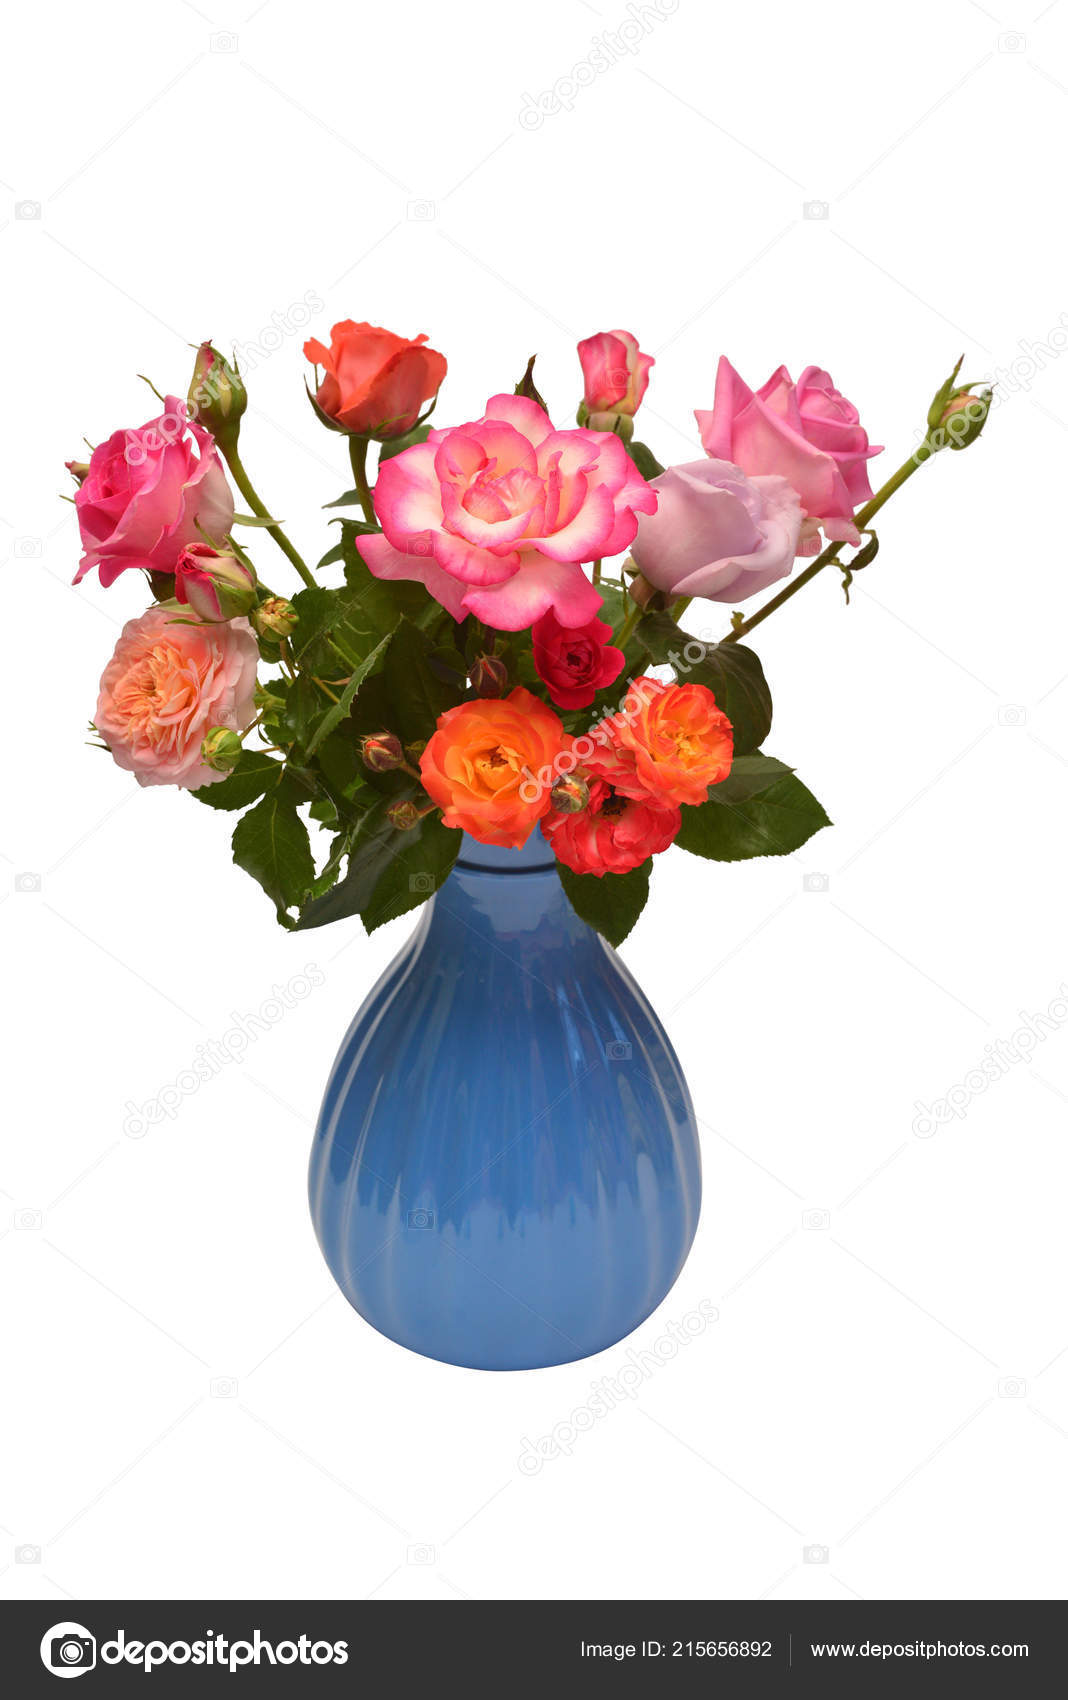 Flower Arrangement Bouquet Roses Vase Isolated White Background